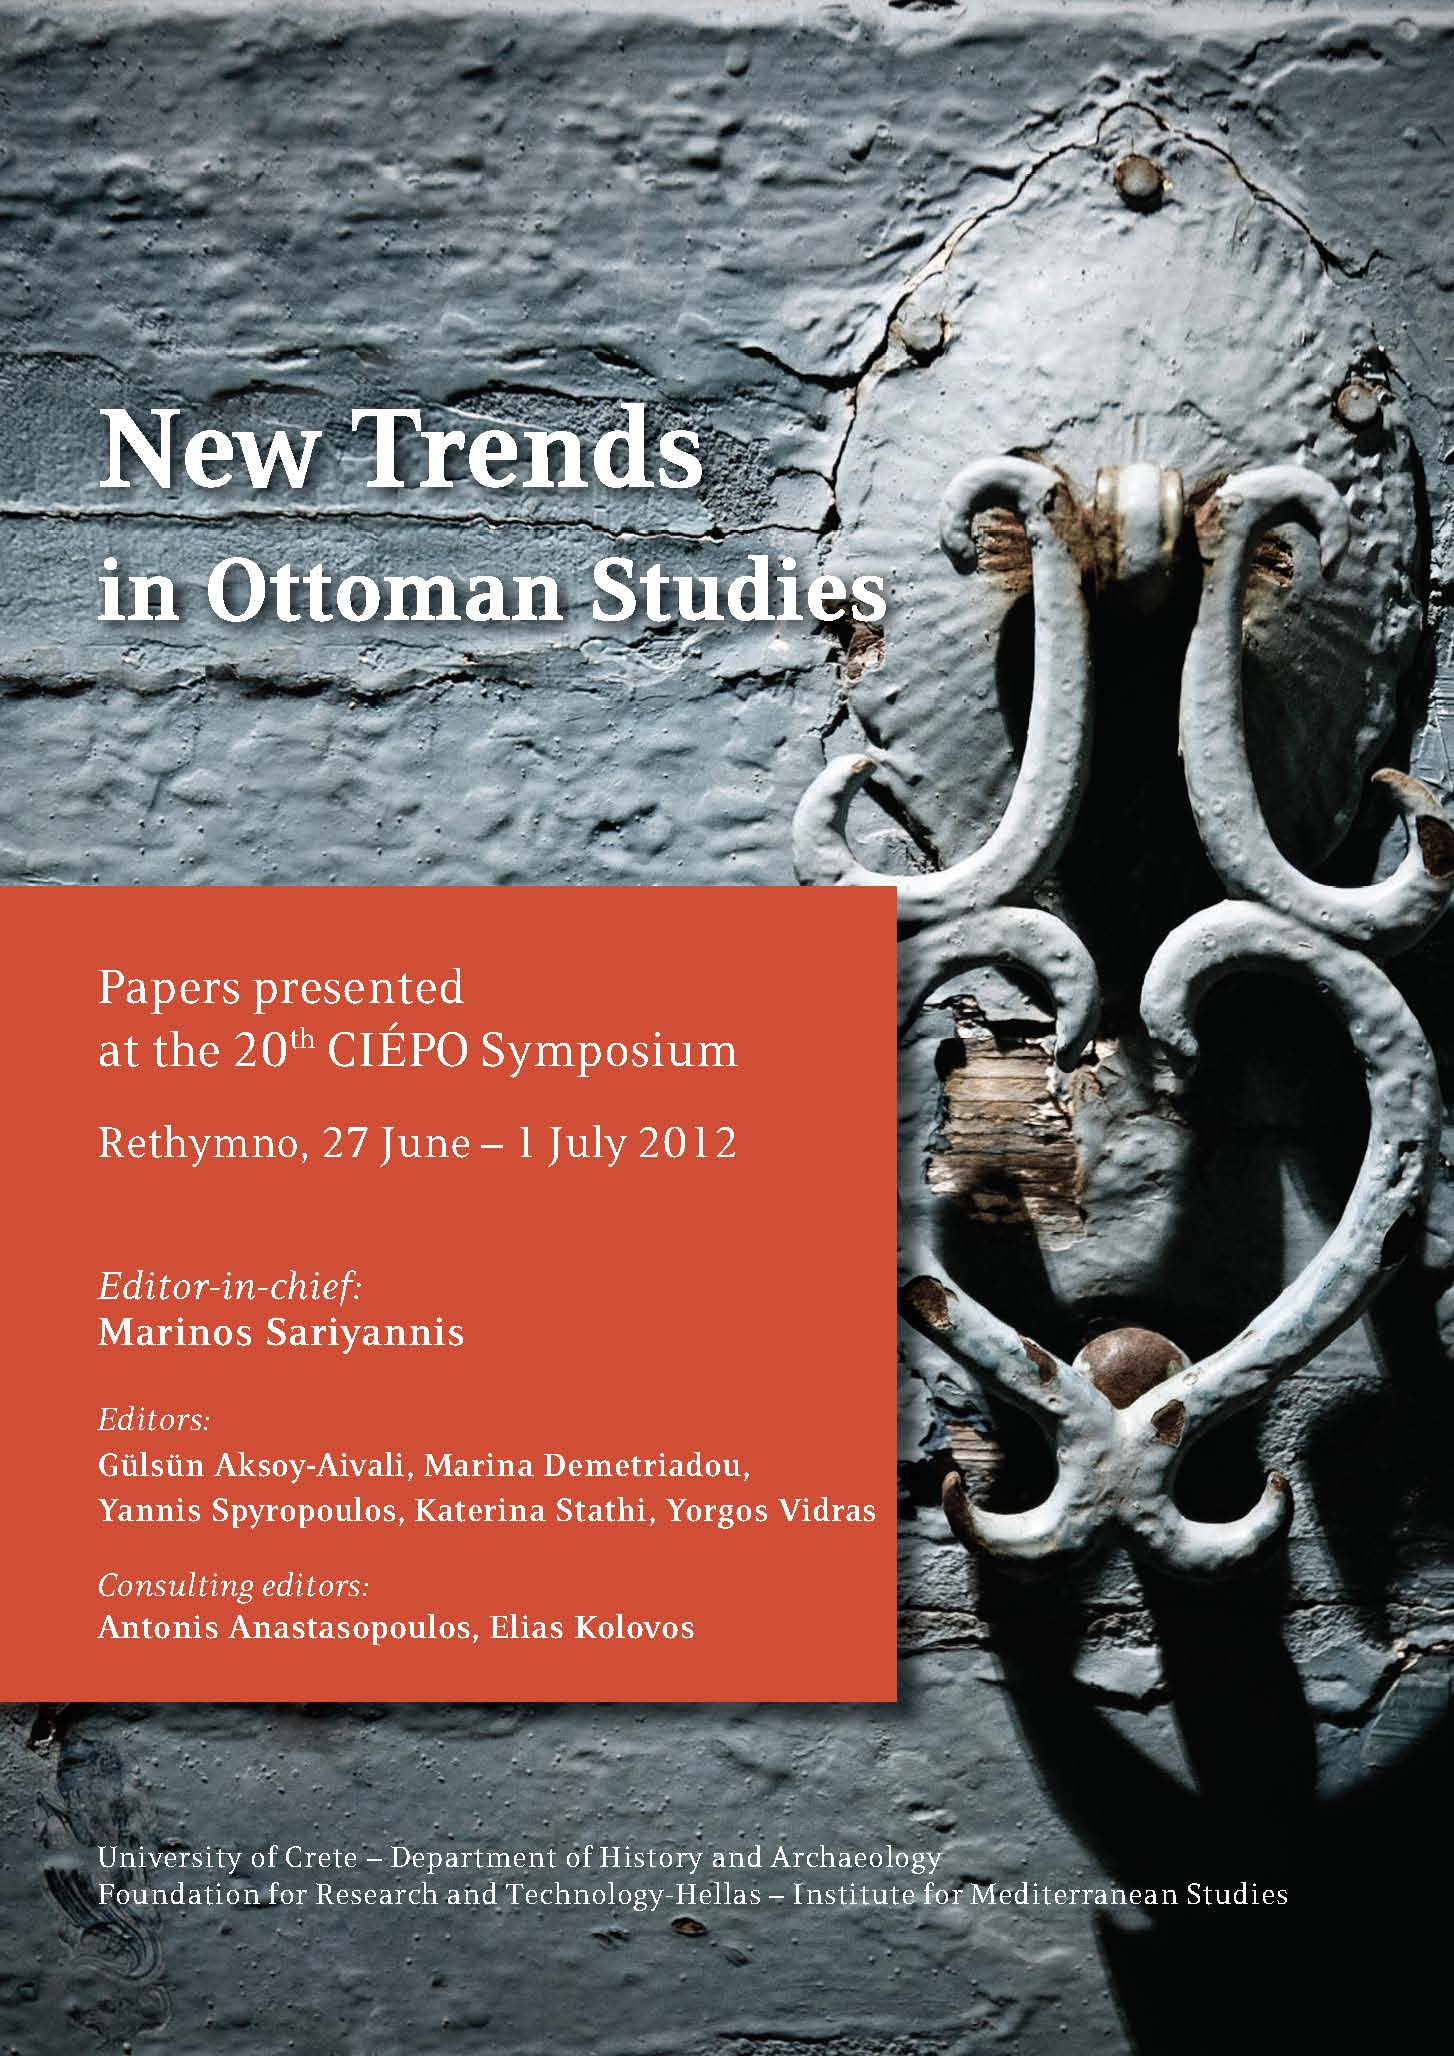 New Trends in Ottoman Studies: Papers presented at the 20th CIÉPO Symposium, Rethymno, 27 June–1 July 2012